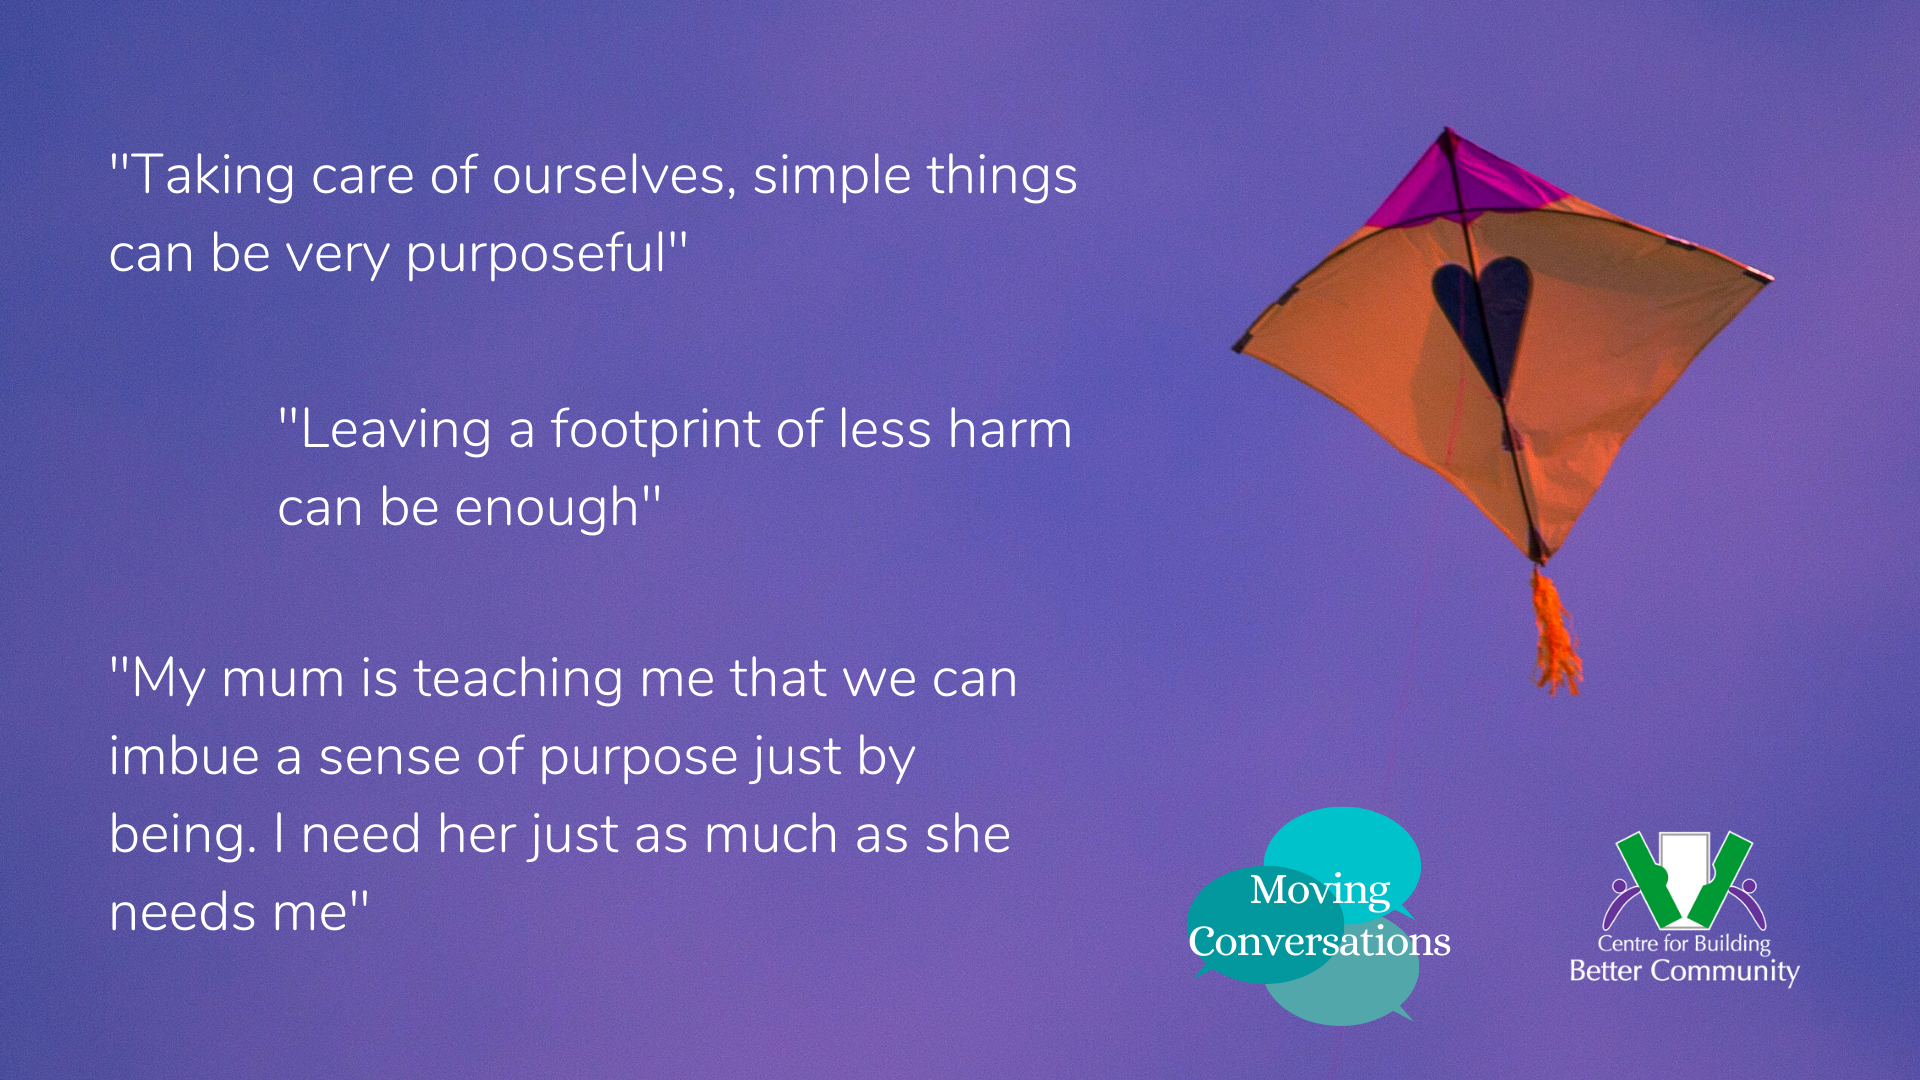 A kite with a heart graphic on it is soaring in a clear sky. Quotes from participants in the Finding Purpose discussion are included. Quote 1: Taking care of ourselves, simple things can be very purposeful. Quote2: Leaving a footprint of less harm can be enough. Quote 3: My mum is teaching me that we can imbue a sense of purpose just by being. I need her just as much as she needs me.